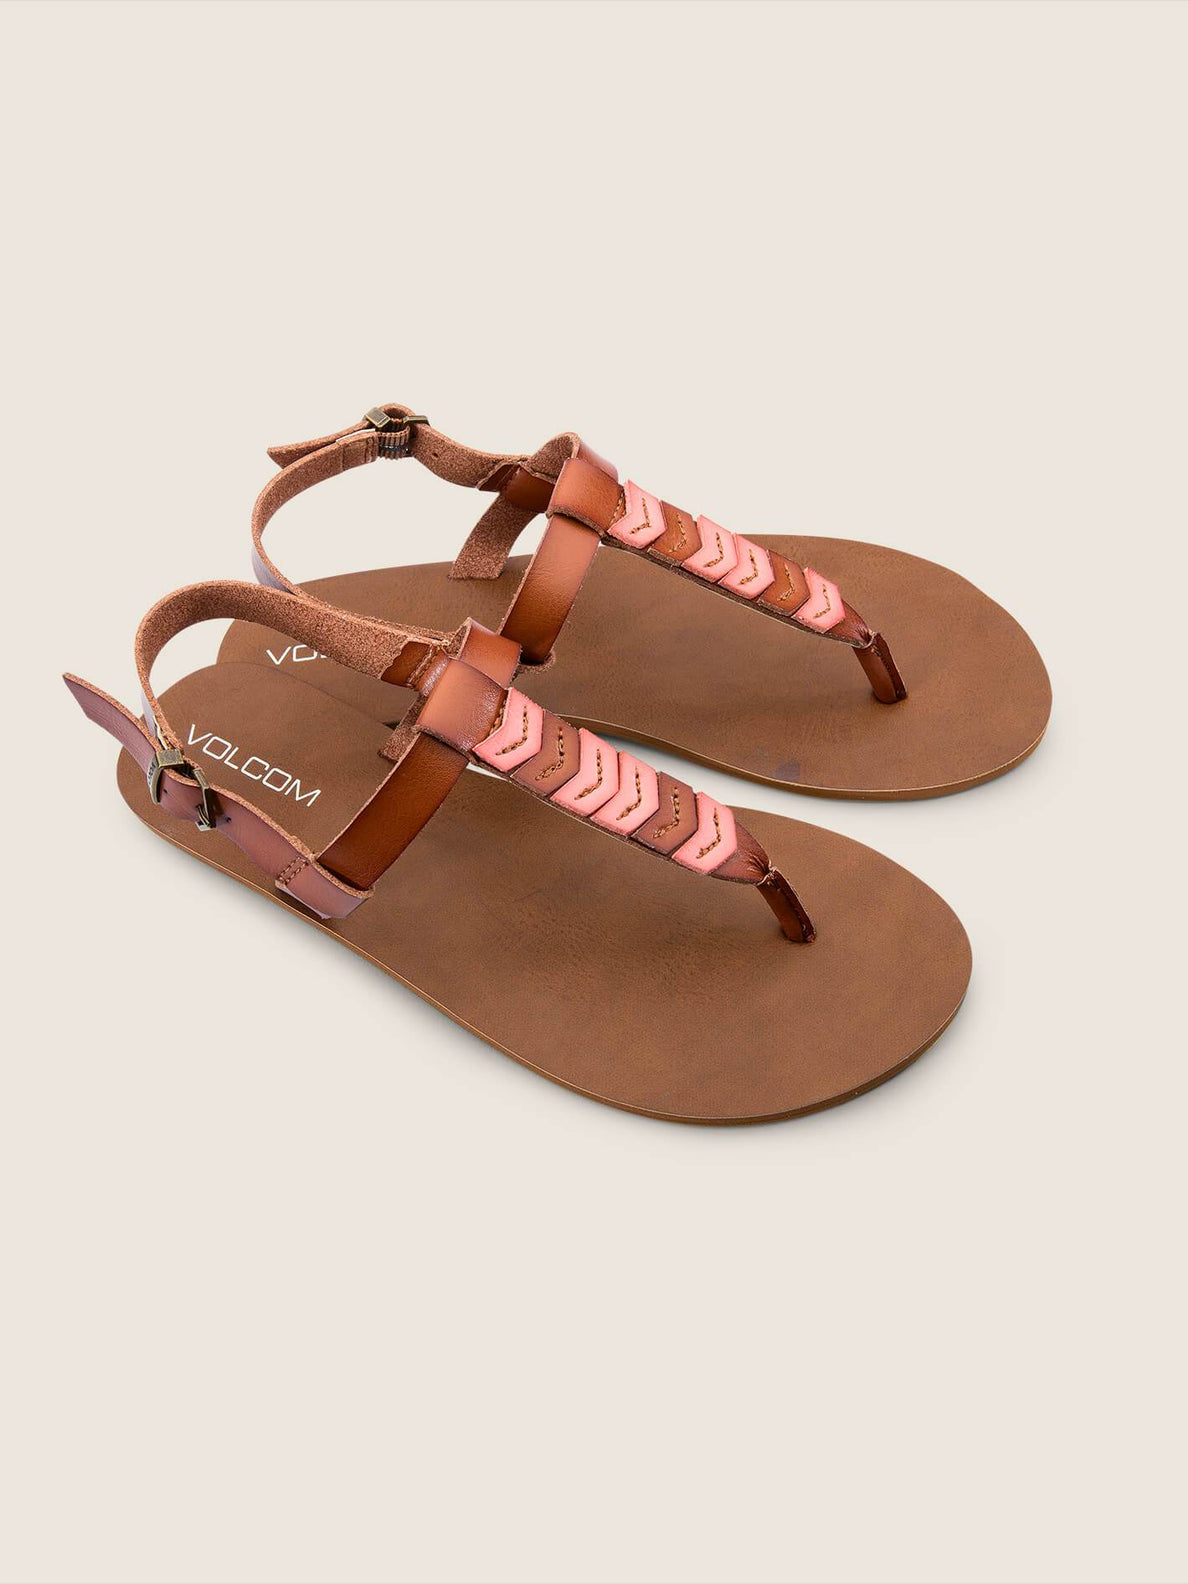 Trail 6 Sandals In Coral, Front View